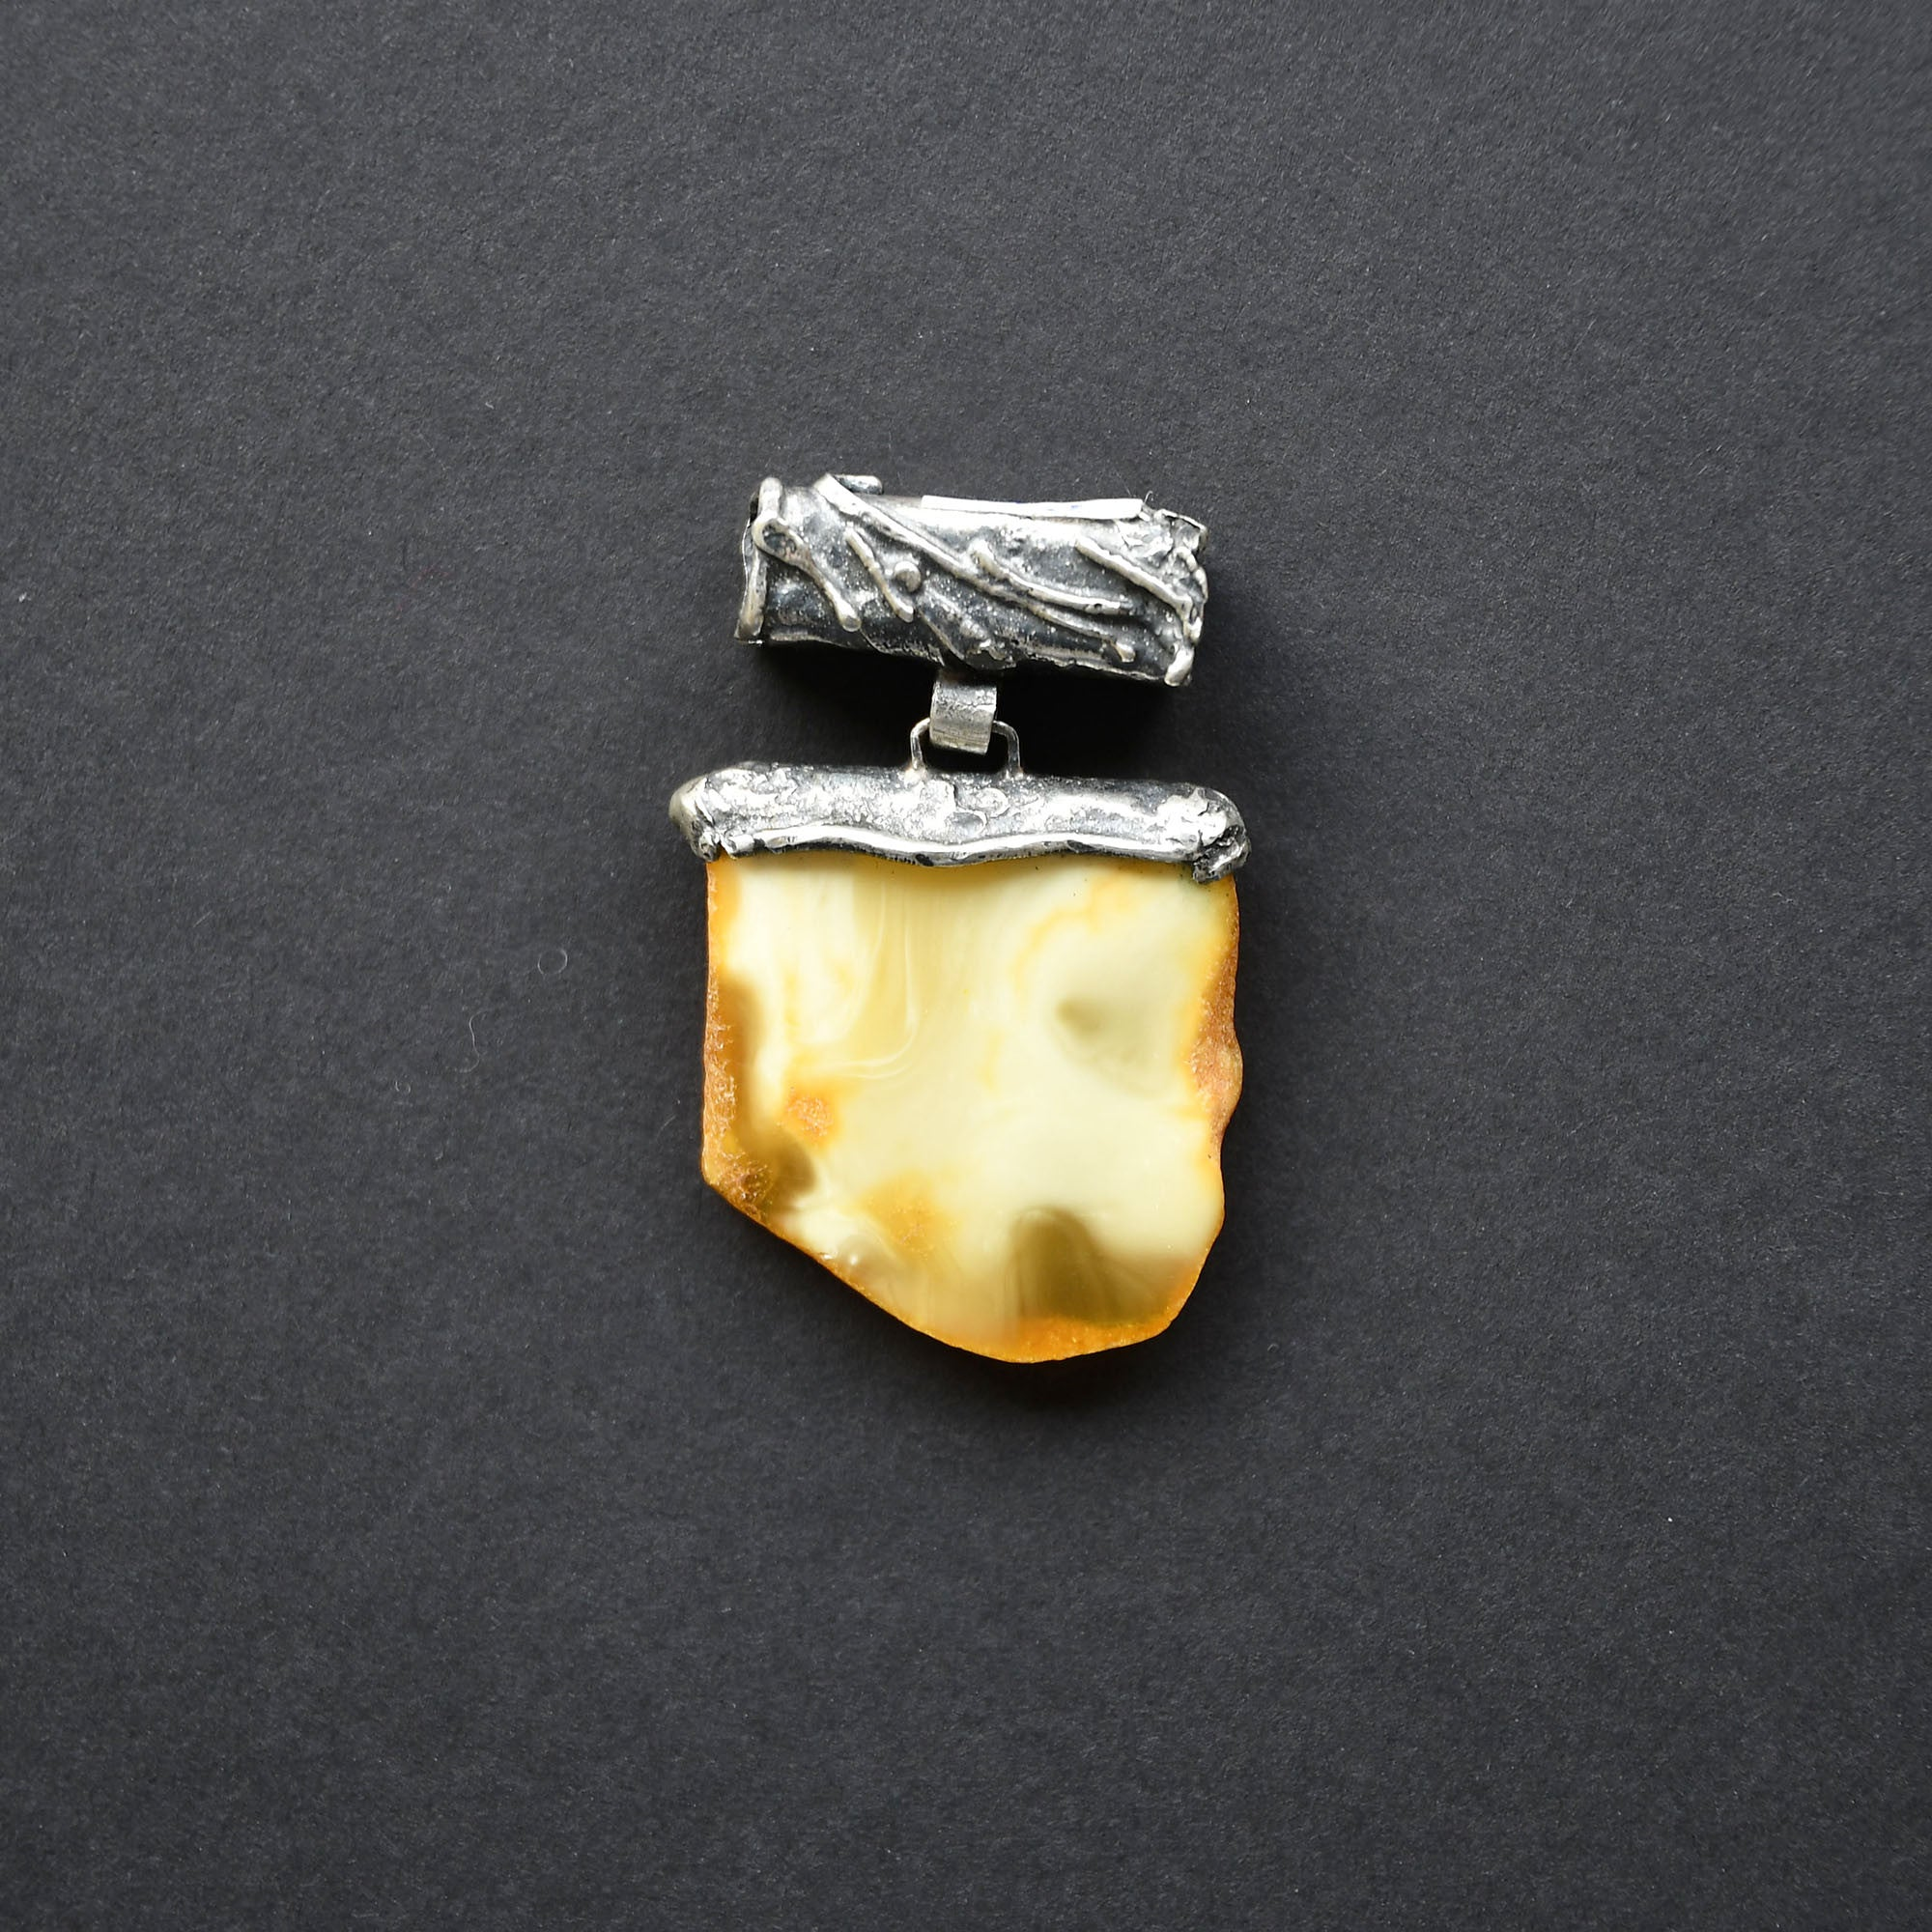 Amber pendant in silver setting with a secret